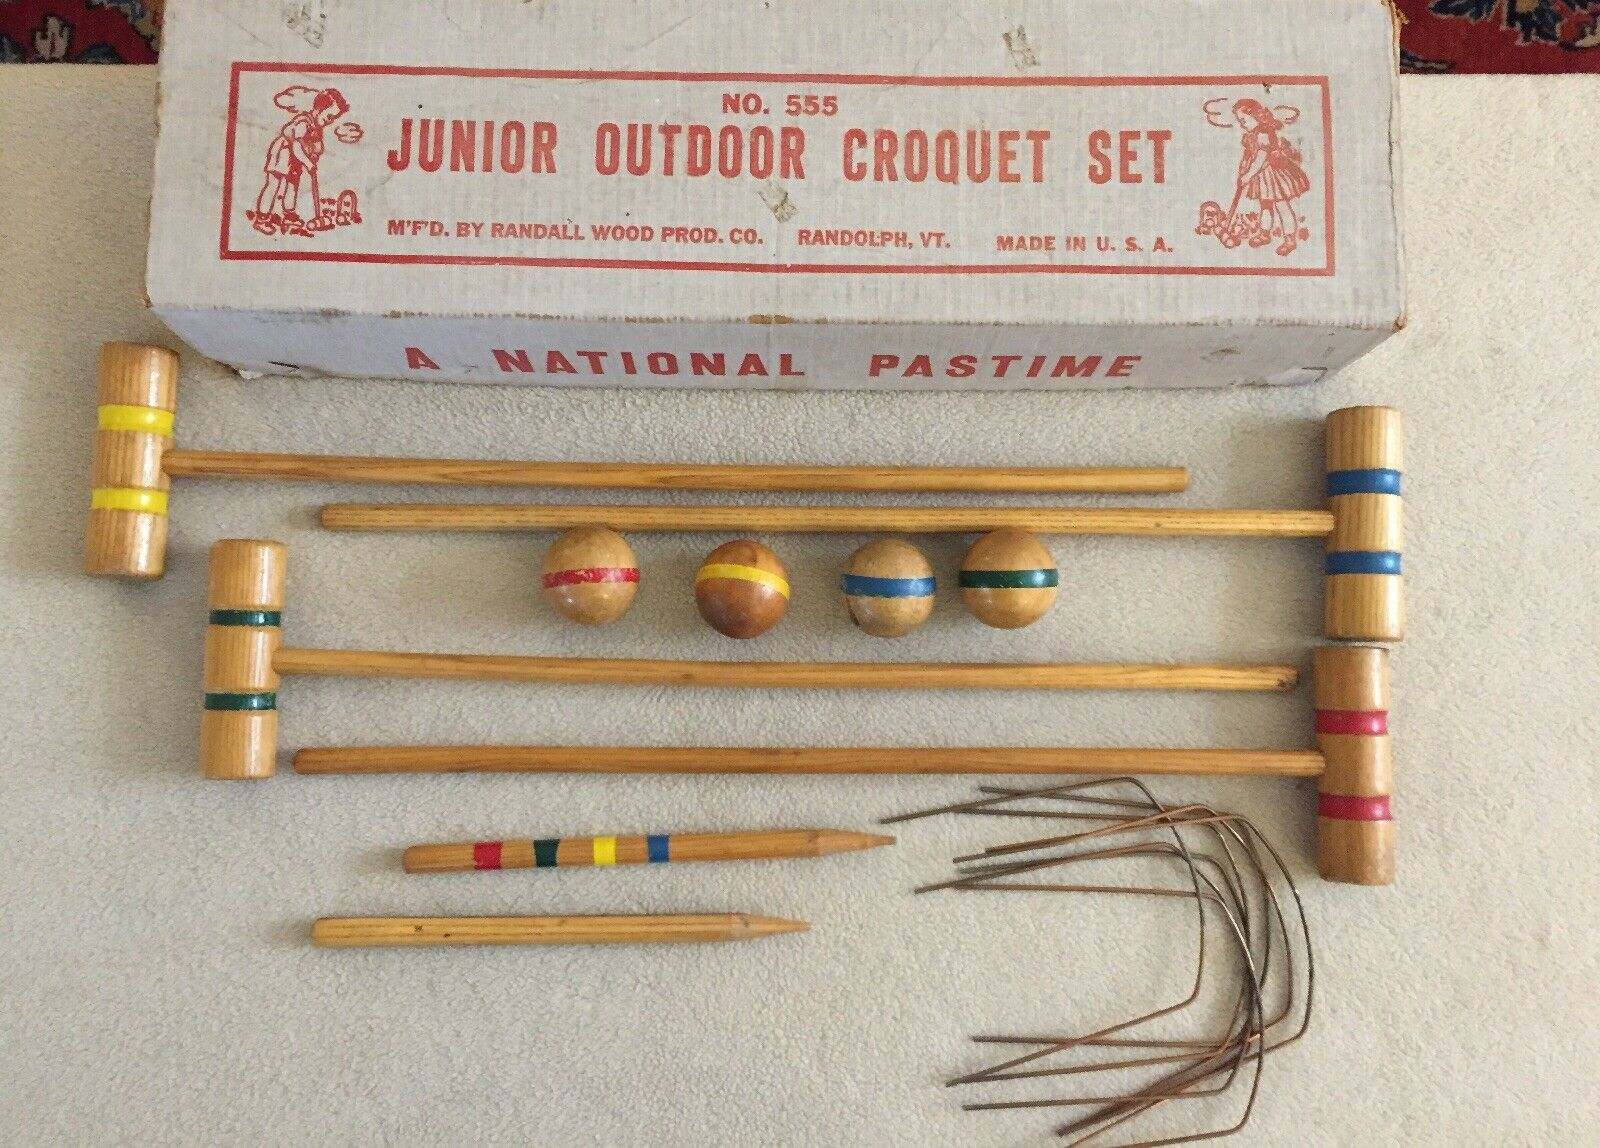 Vintage Junior Outdoor Croquet Set  Randall Wood Prod Co A National Pastime  up to 42% off